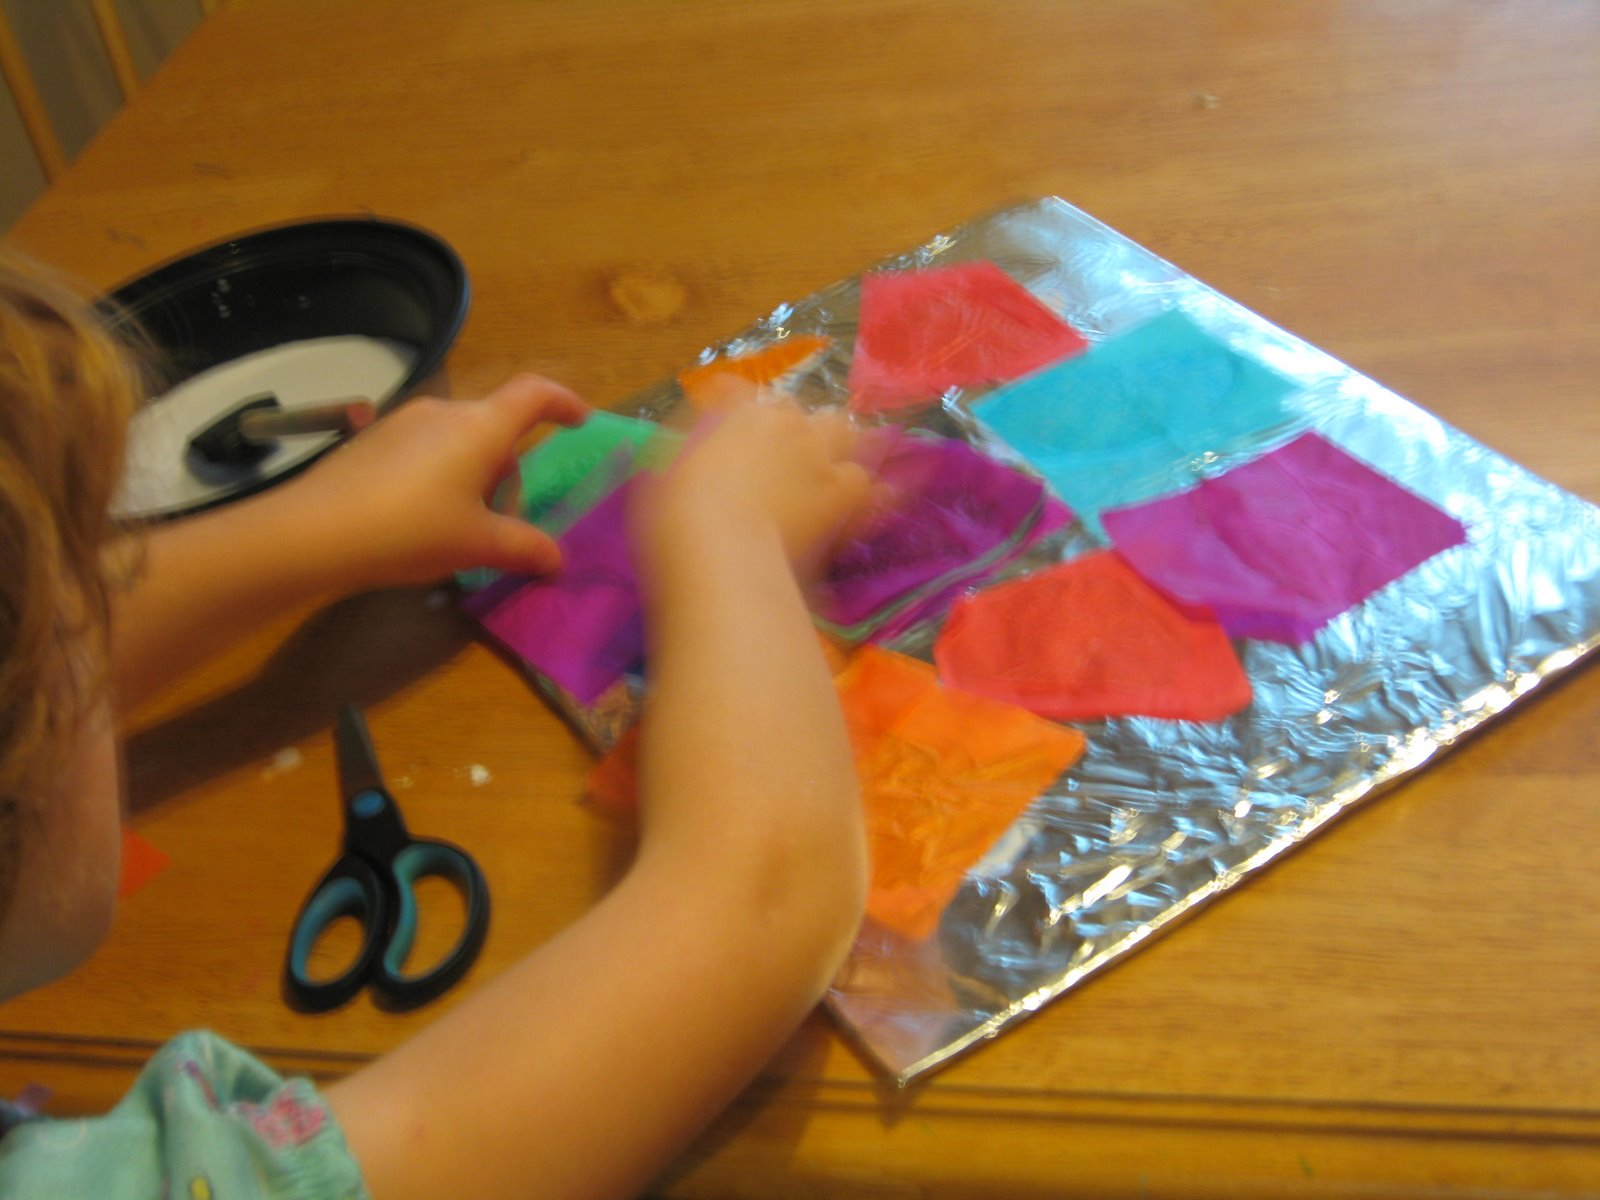 tissue paper crafts How to make a tissue paper suncatcher with wheat paste on wax paper this easy kids craft uses materials you likely have and is eco-friendly and beautiful.